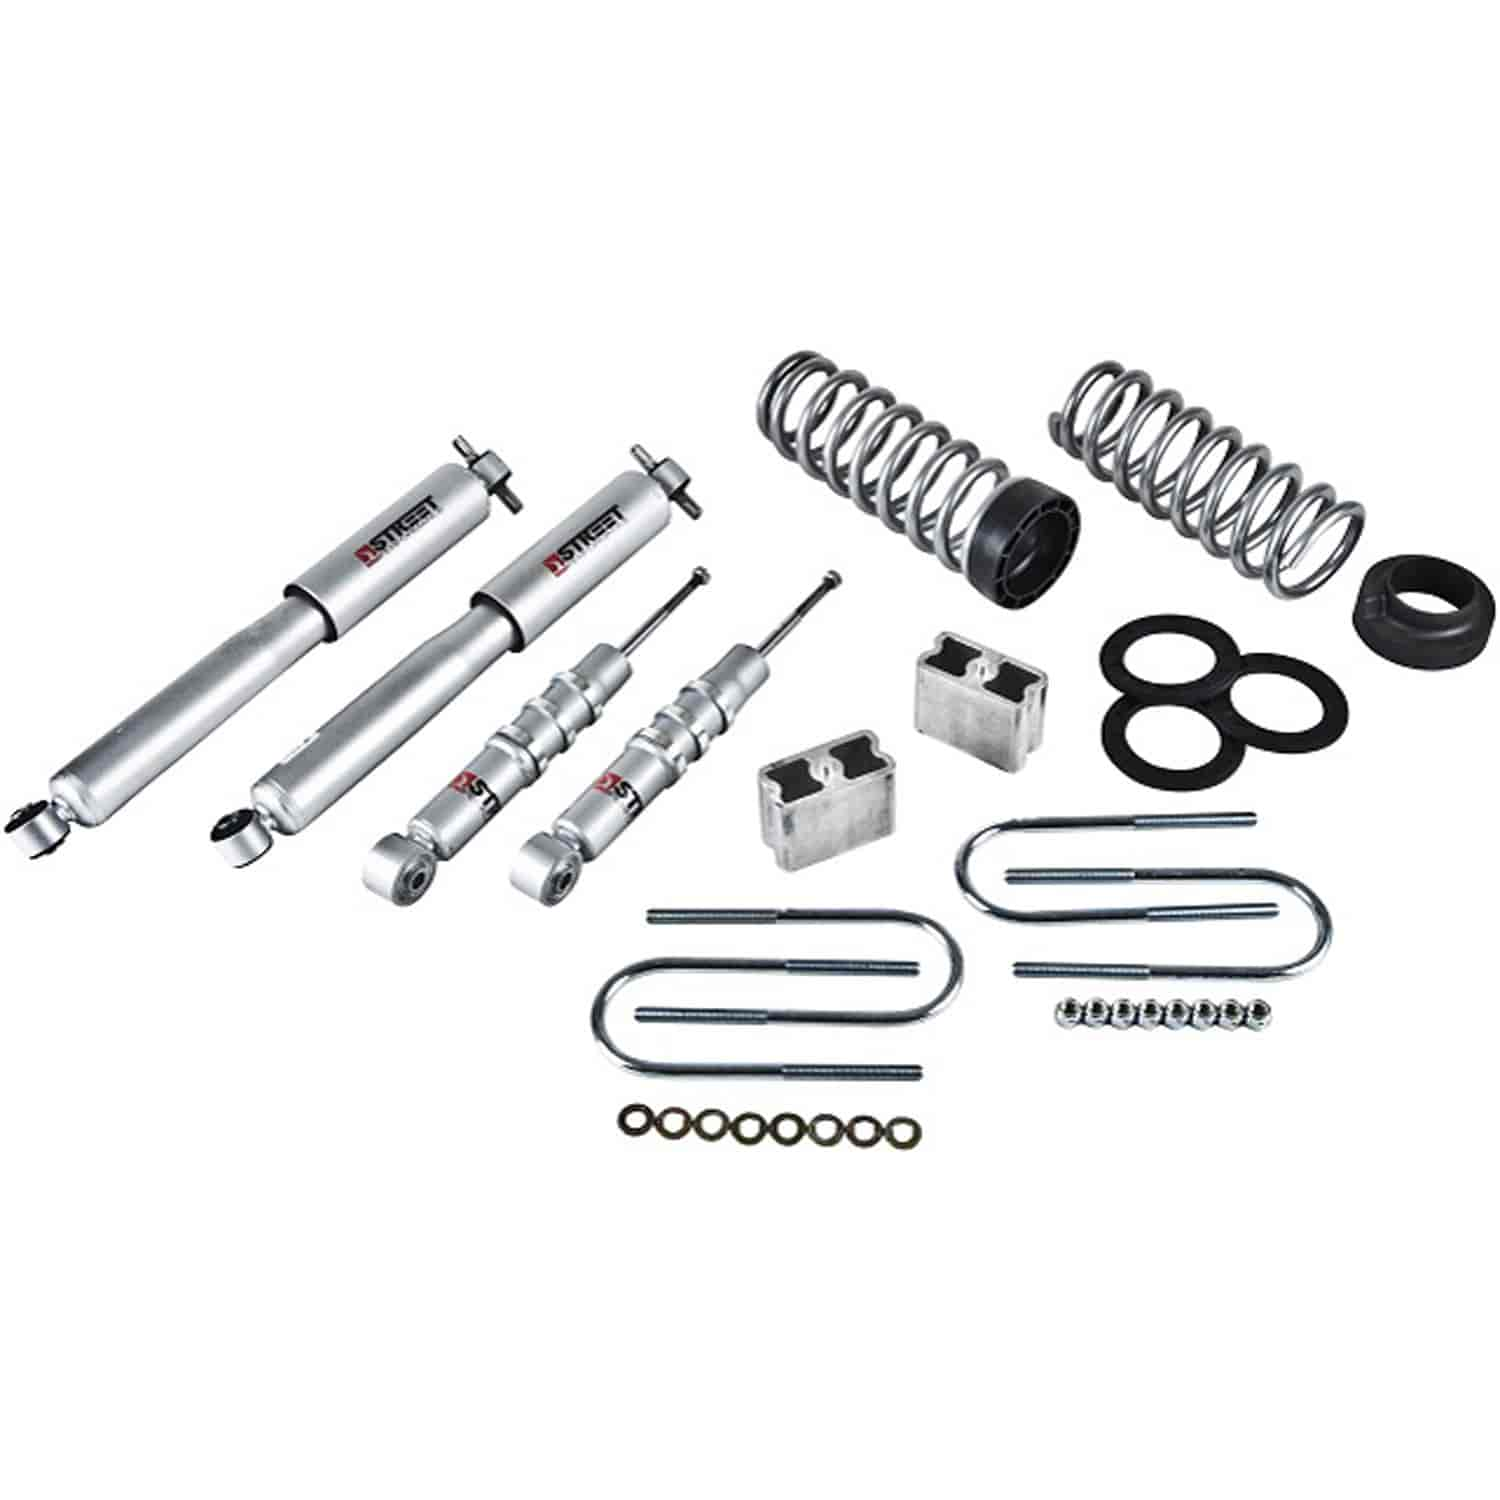 Belltech 602sp Complete Lowering Kit For Chevy